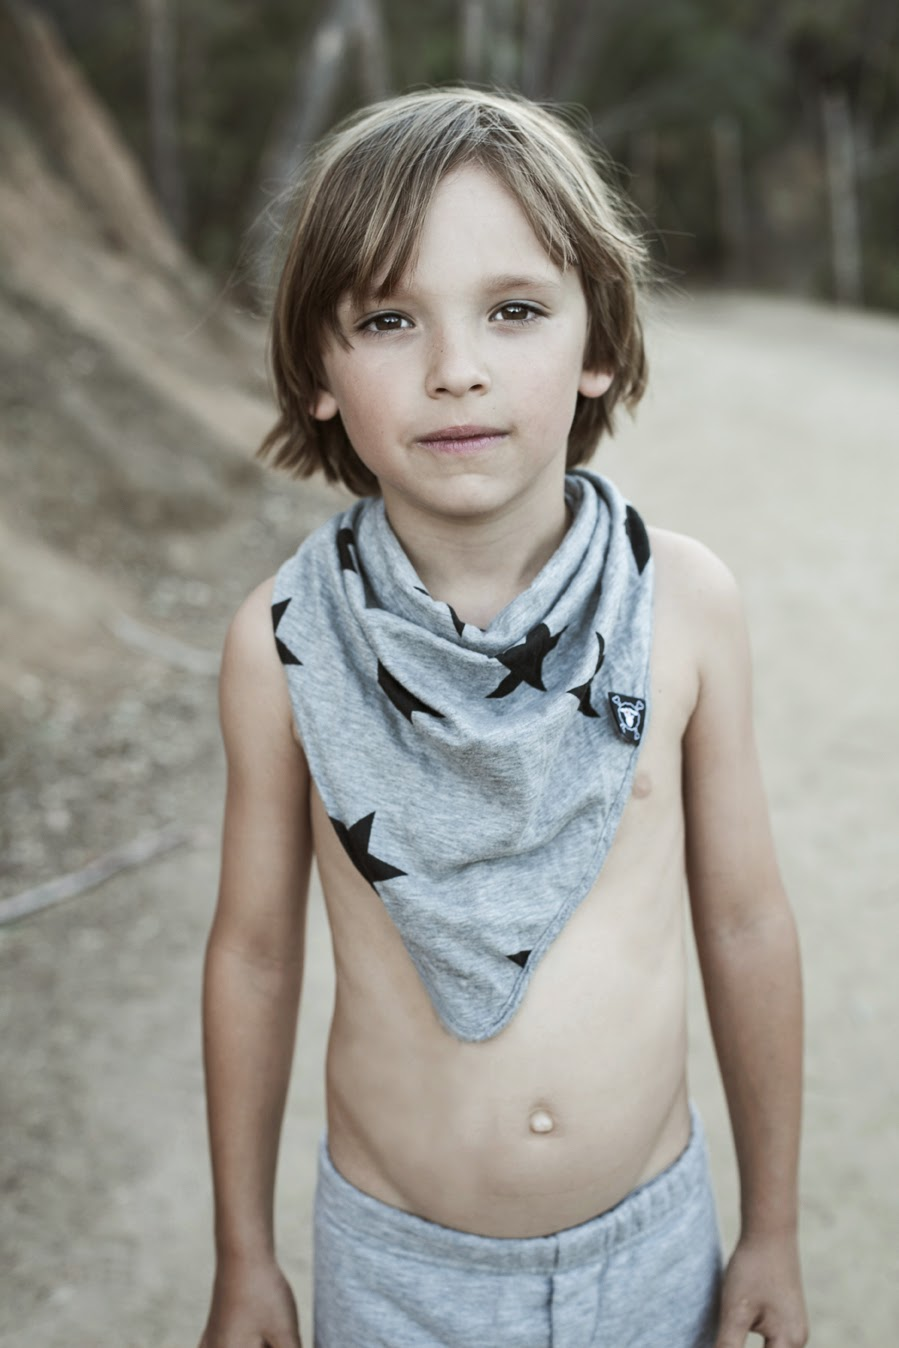 Kids star scarf - Nununu AW14 editorial by Alexandra Cooper Photography